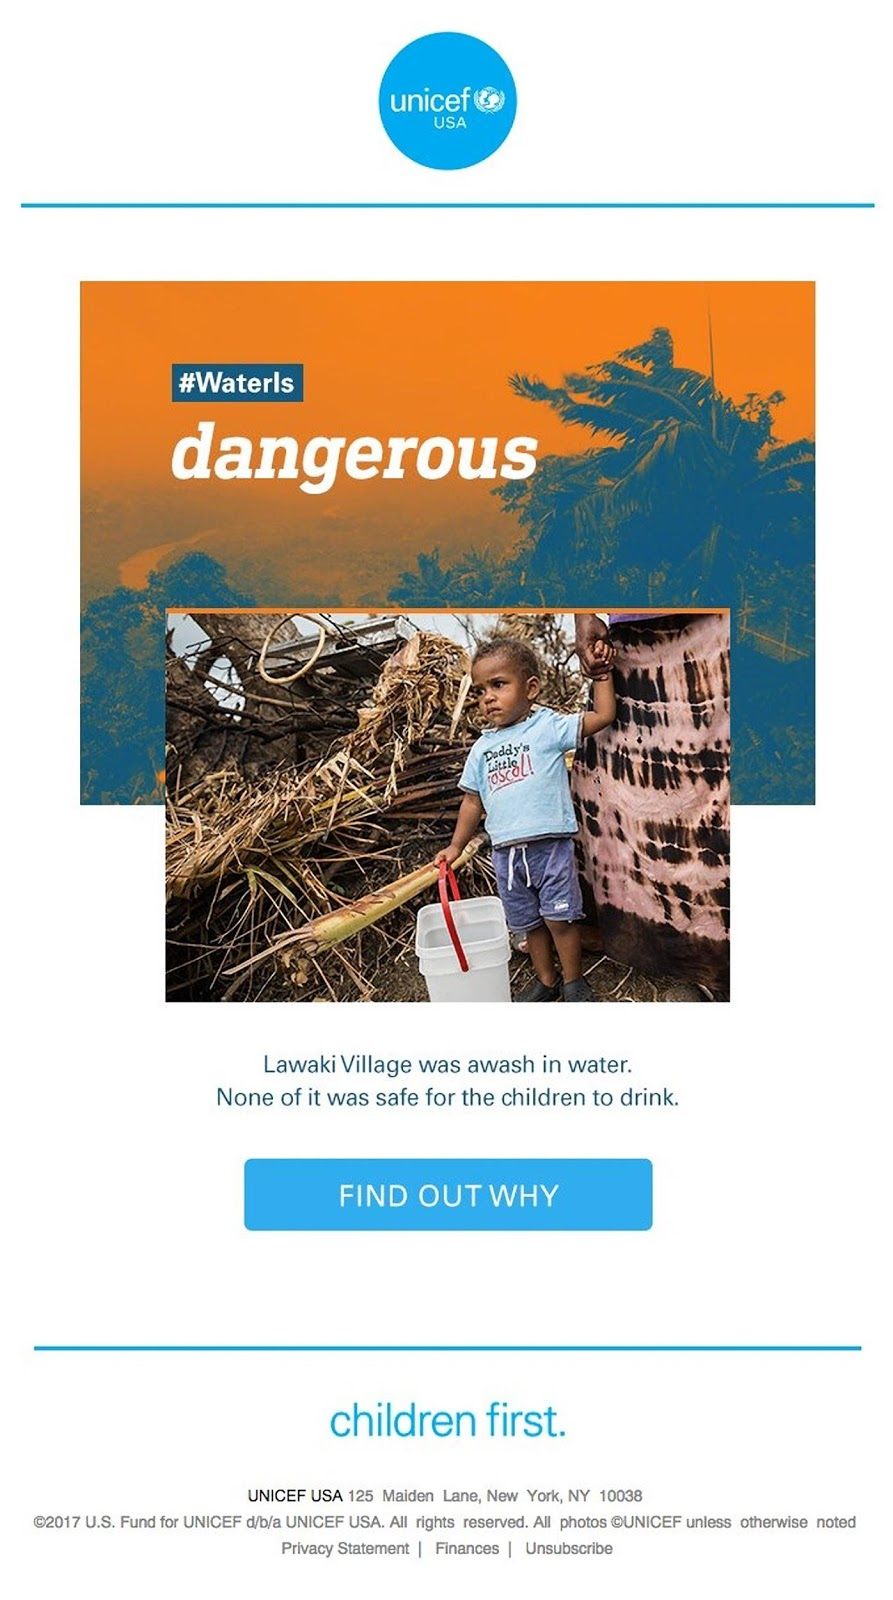 UNICEF's on-point brand consistency email features a minimalist template and blue/orange brand colors.